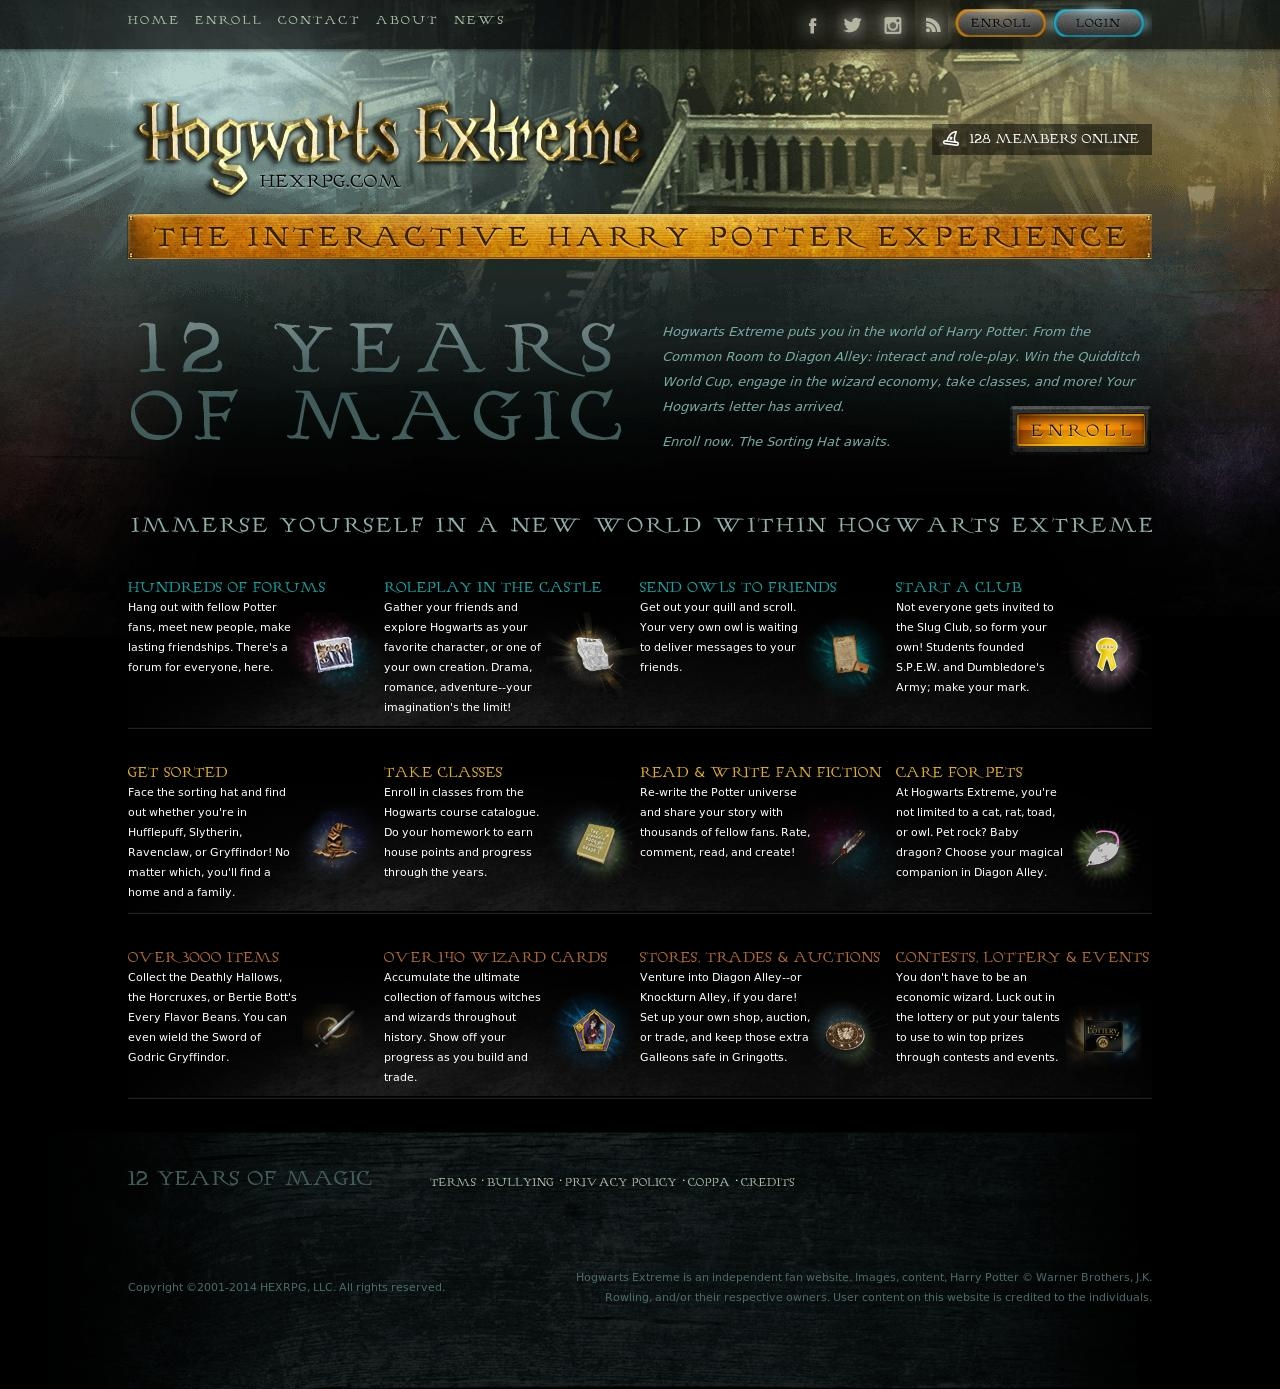 Hogwarts Extreme | The Interactive Harry Potter Experience